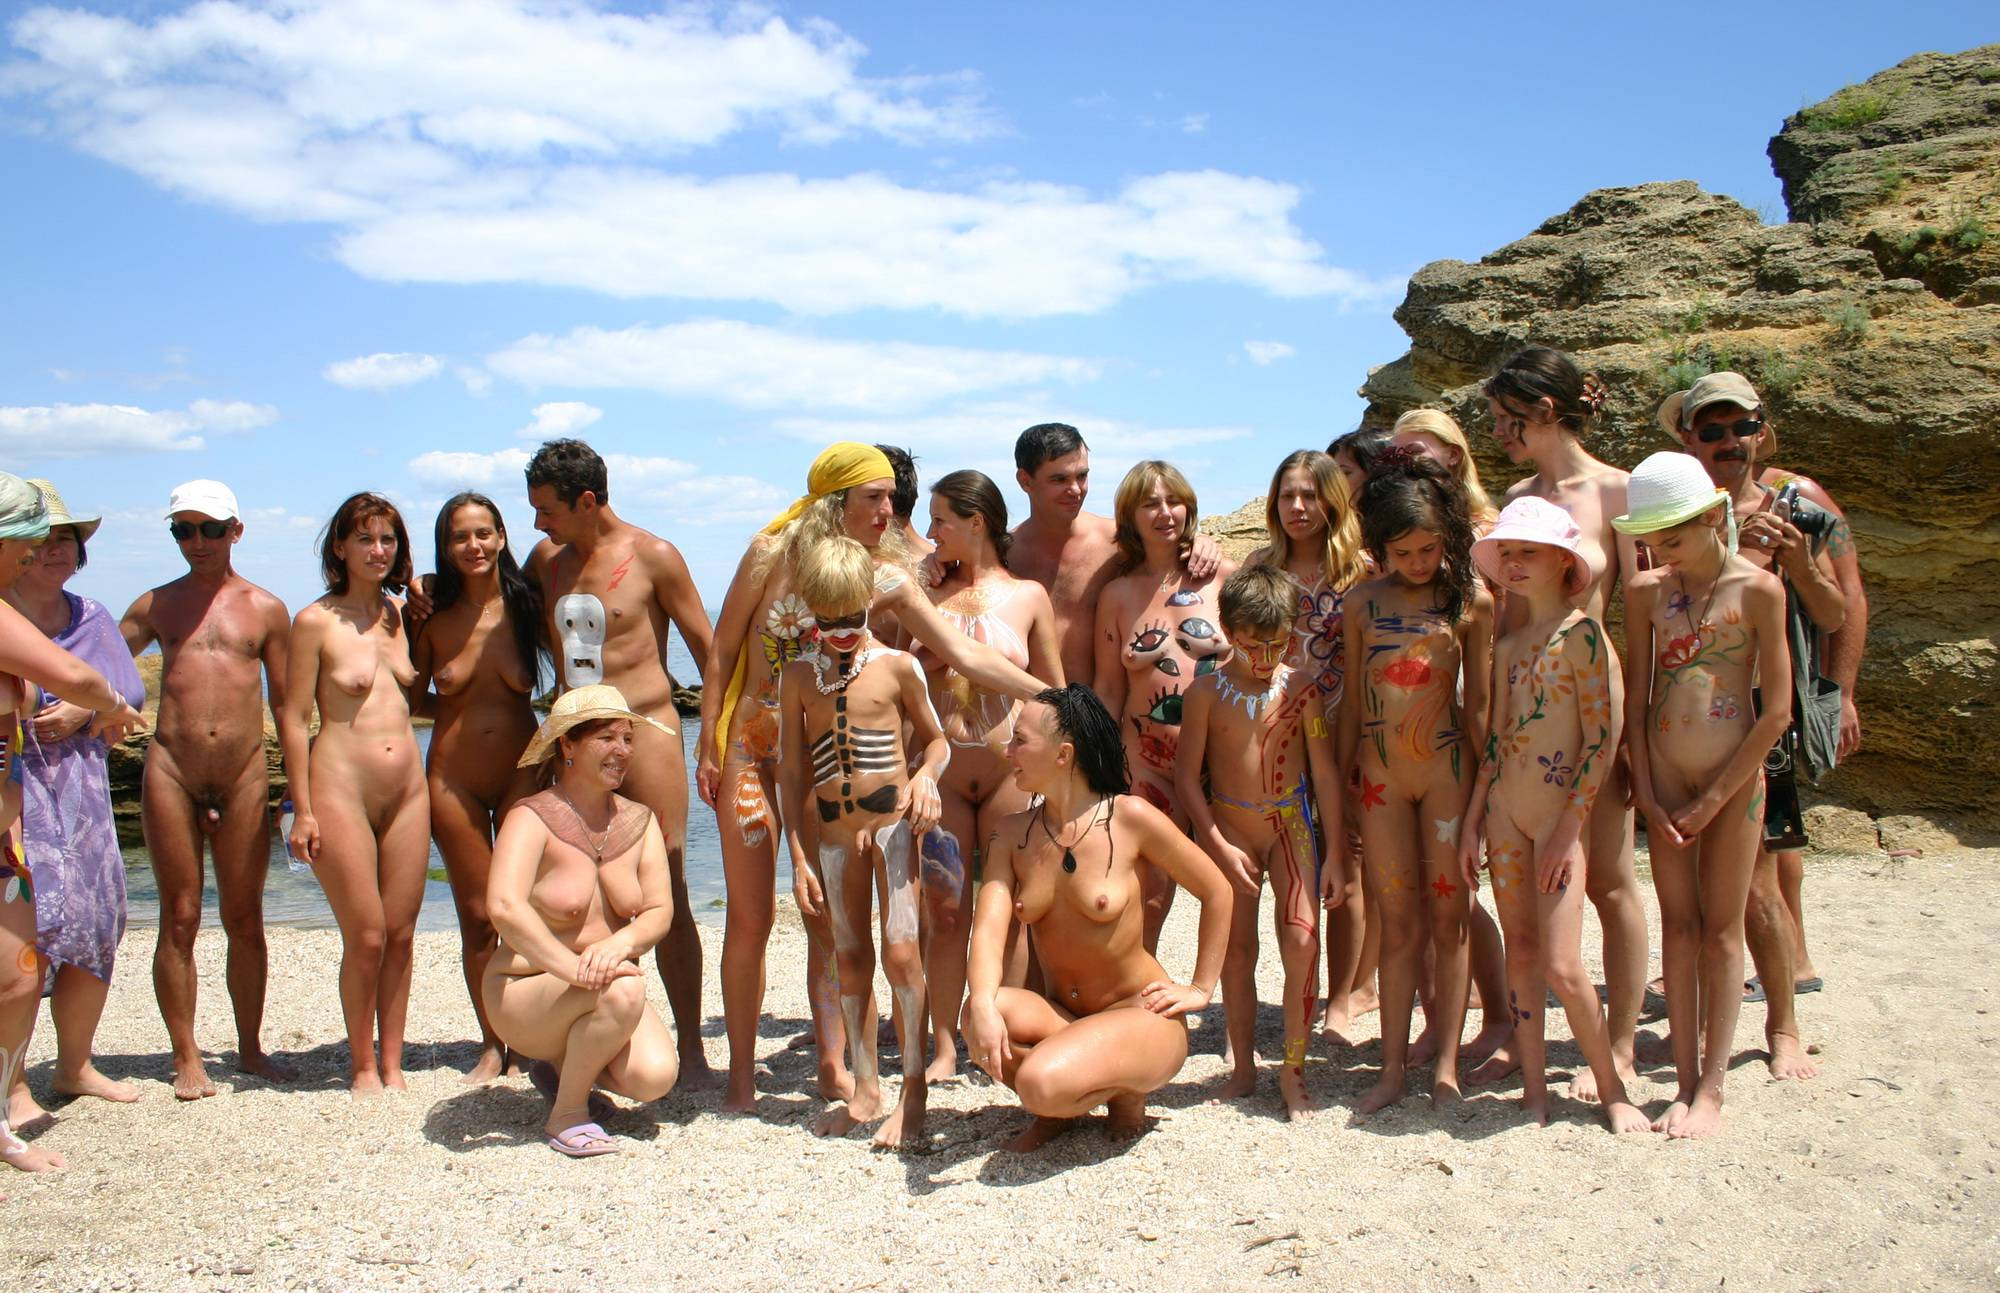 Nudist Gallery Sand Beach Group Photo - 2